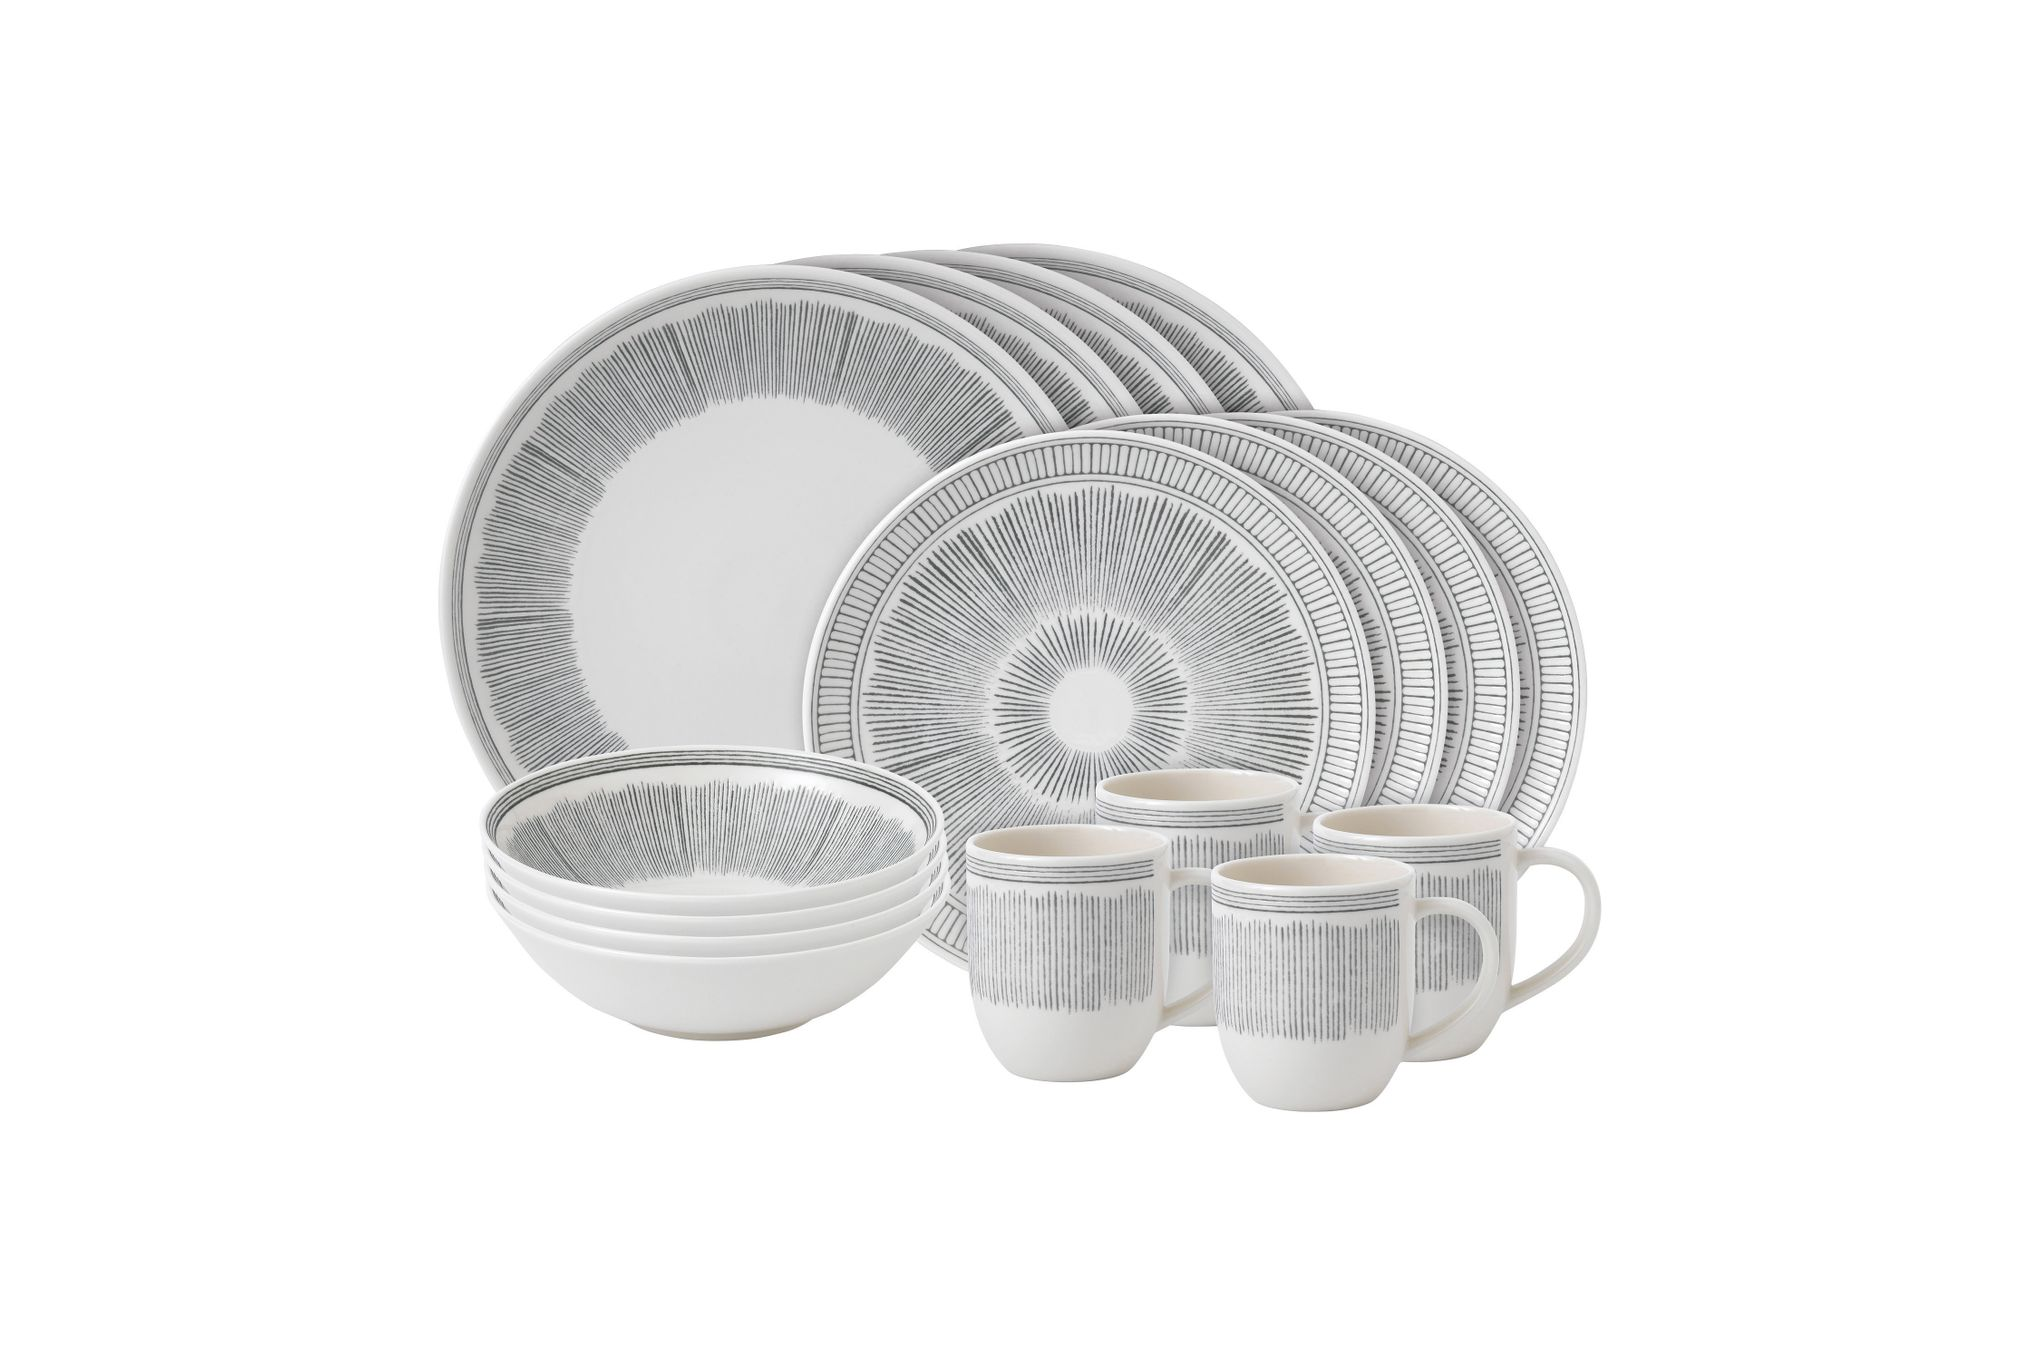 Ellen DeGeneres for Royal Doulton Grey lines 16 Piece Set Grey lines thumb 1